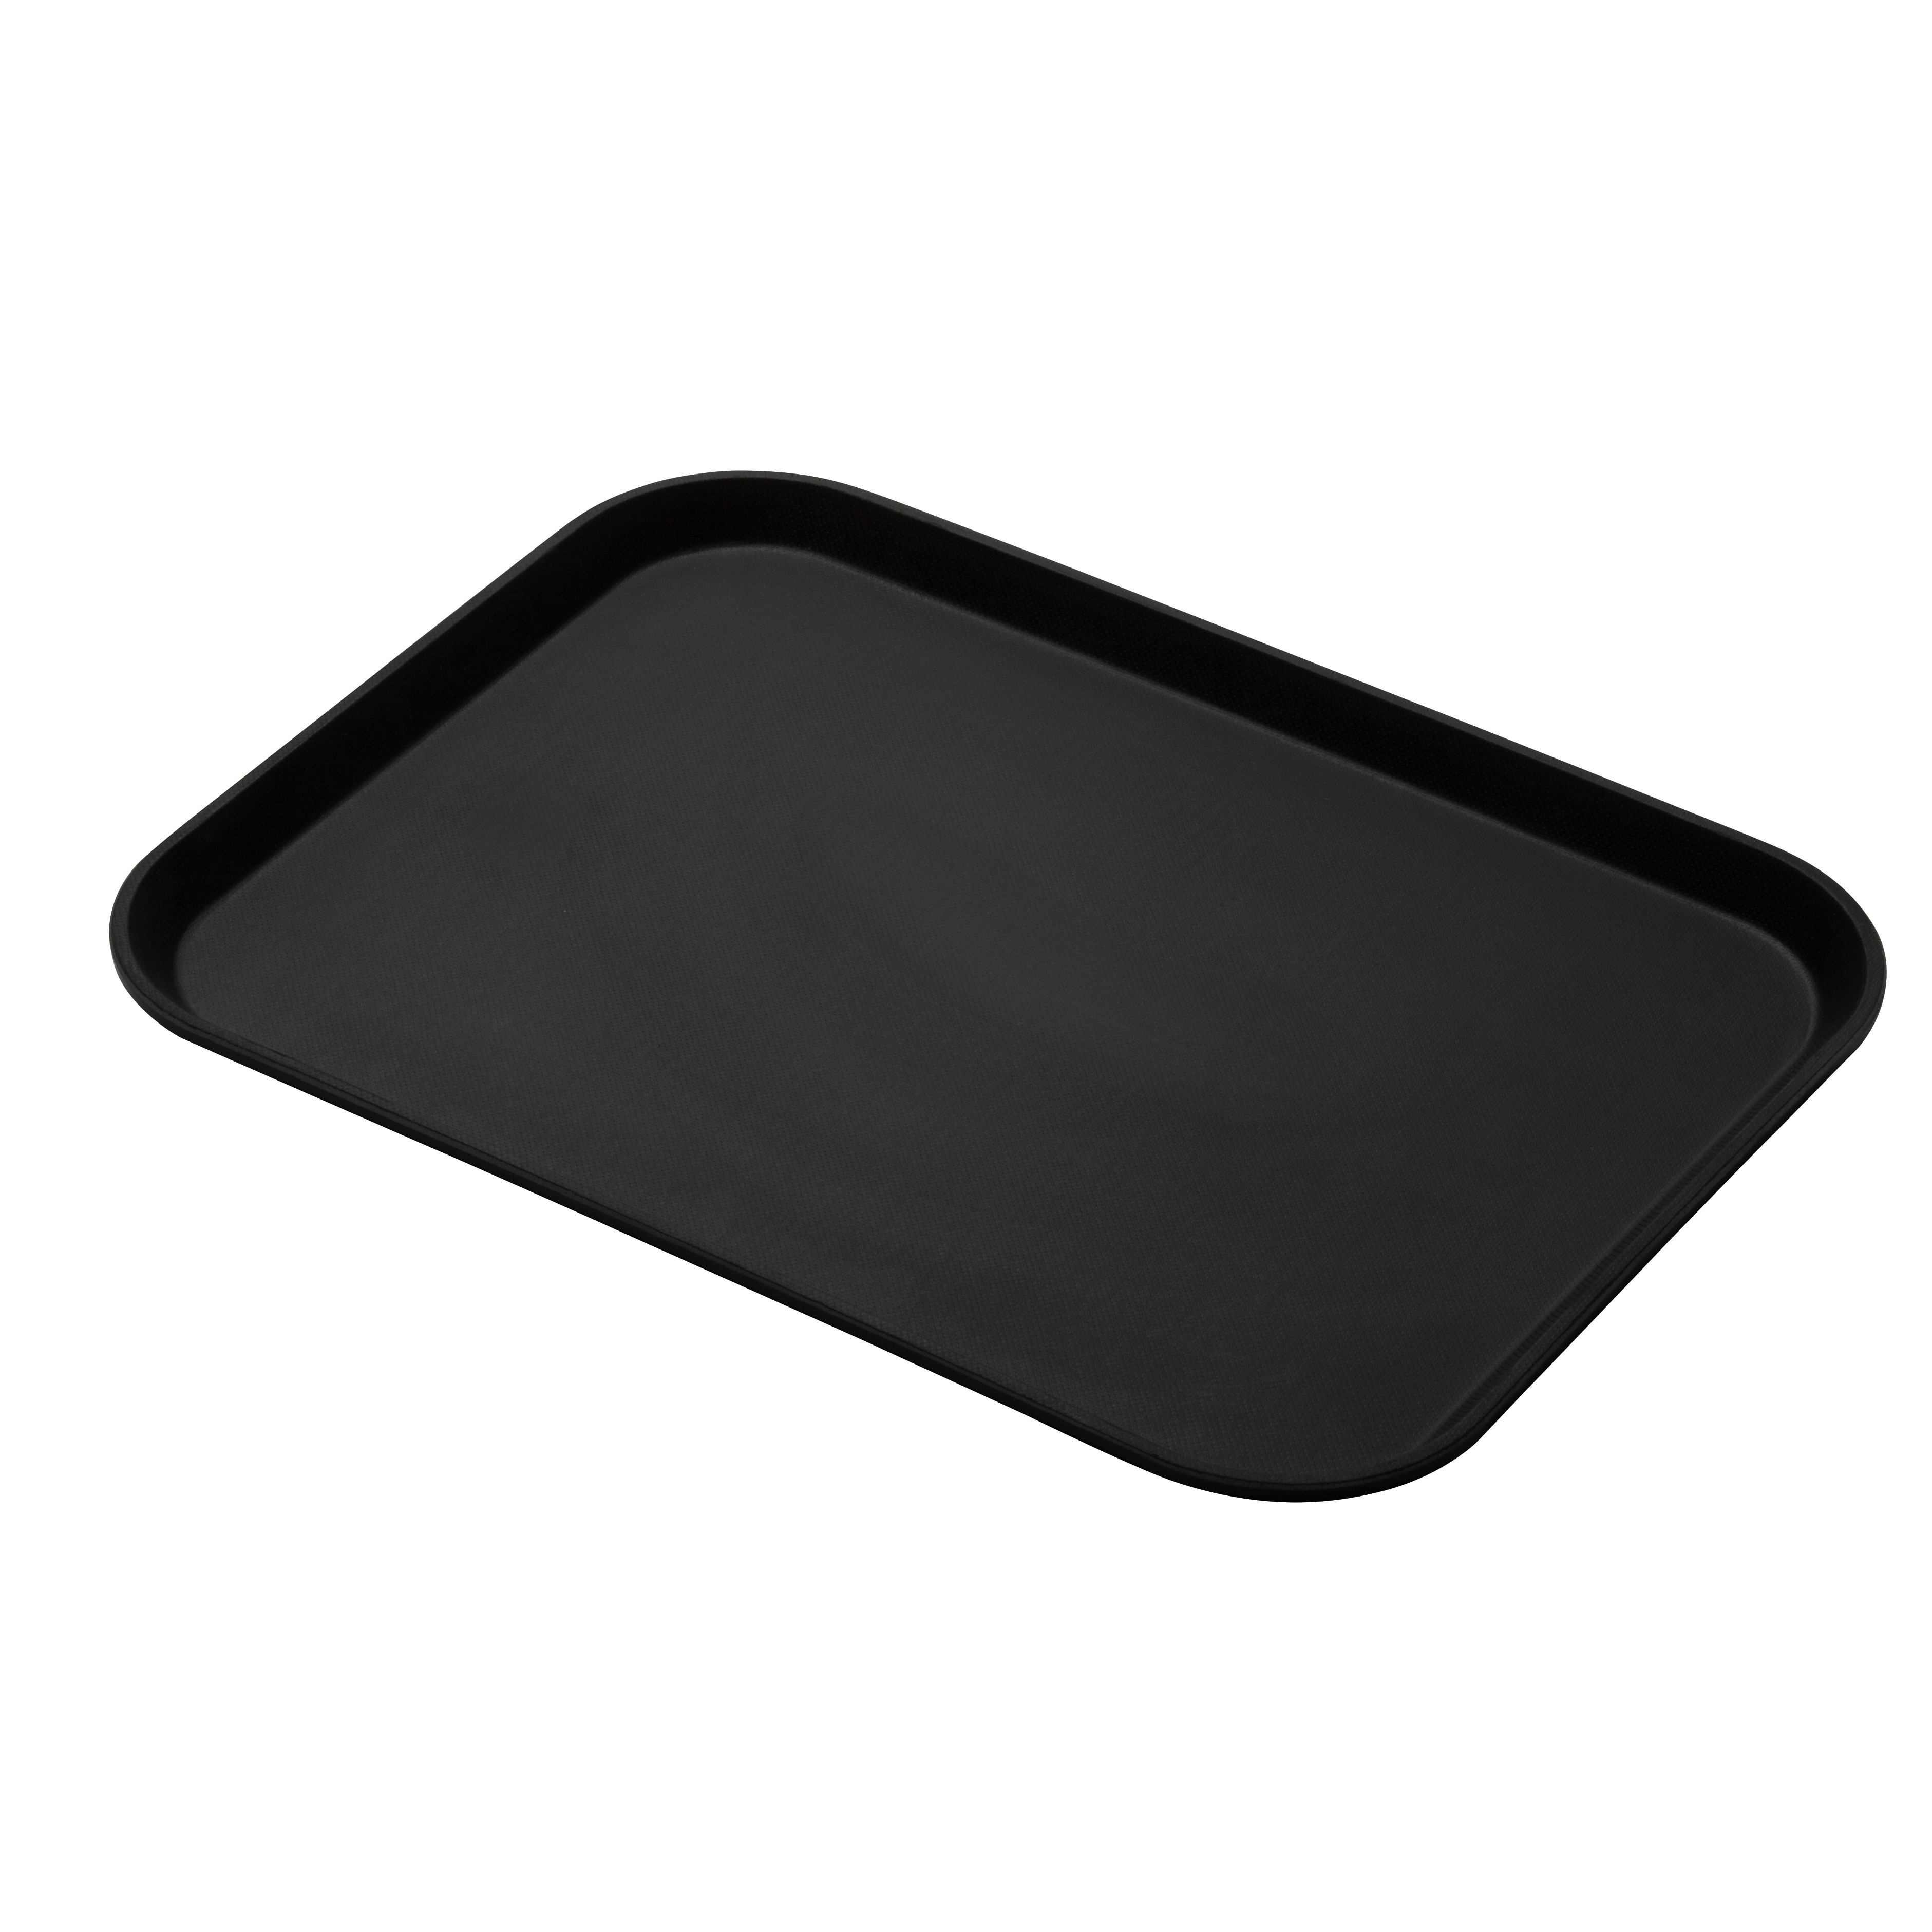 Cambro 1014CT110 serving tray, non-skid